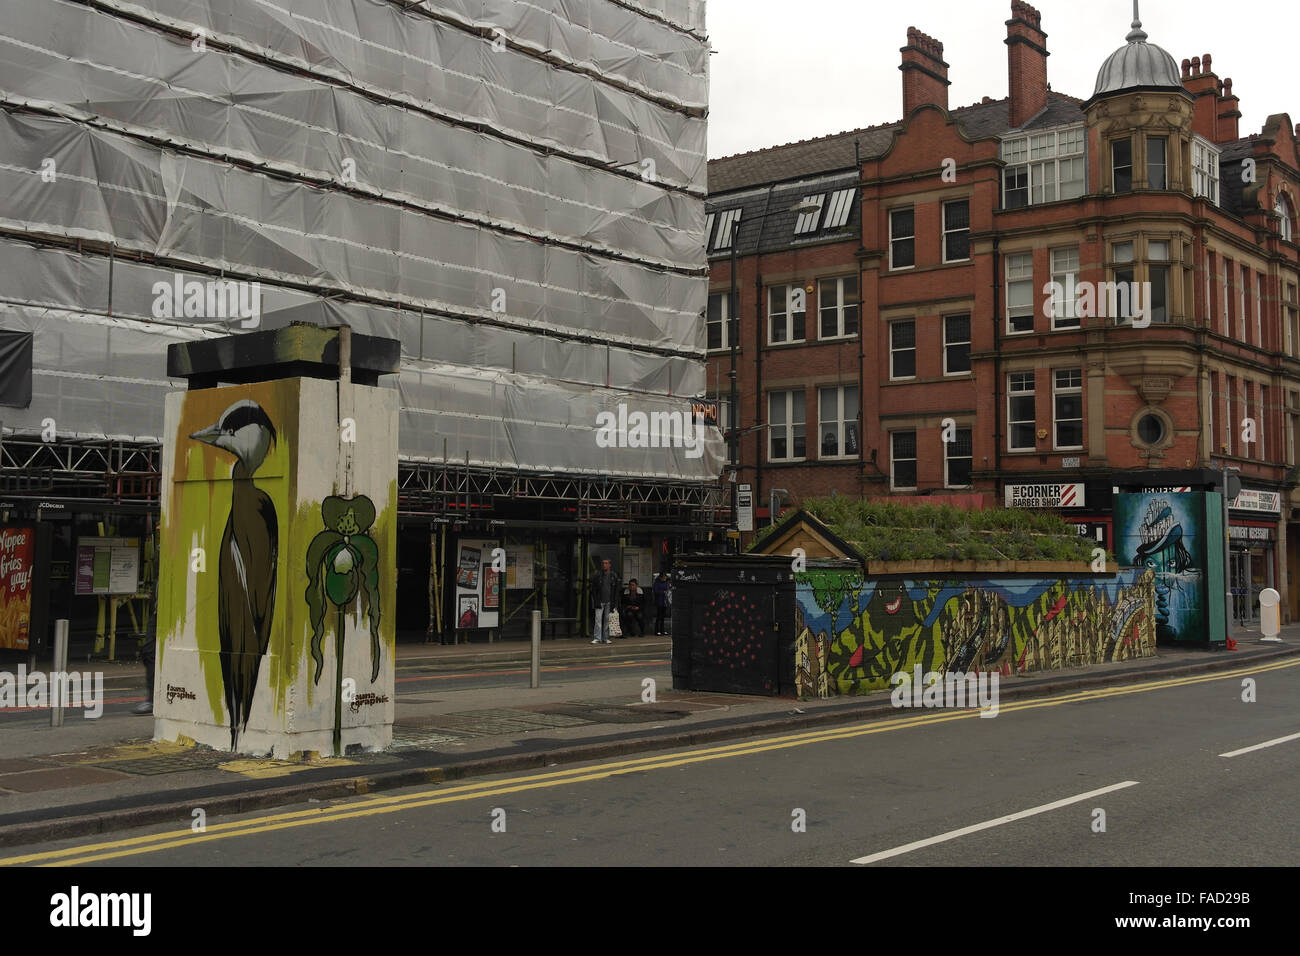 View to Spear Street Faunagraphic heron, Oliver Smith 'Mon 53' mural, SLM 'Wild Woman island', Stevenson Square, Stock Photo